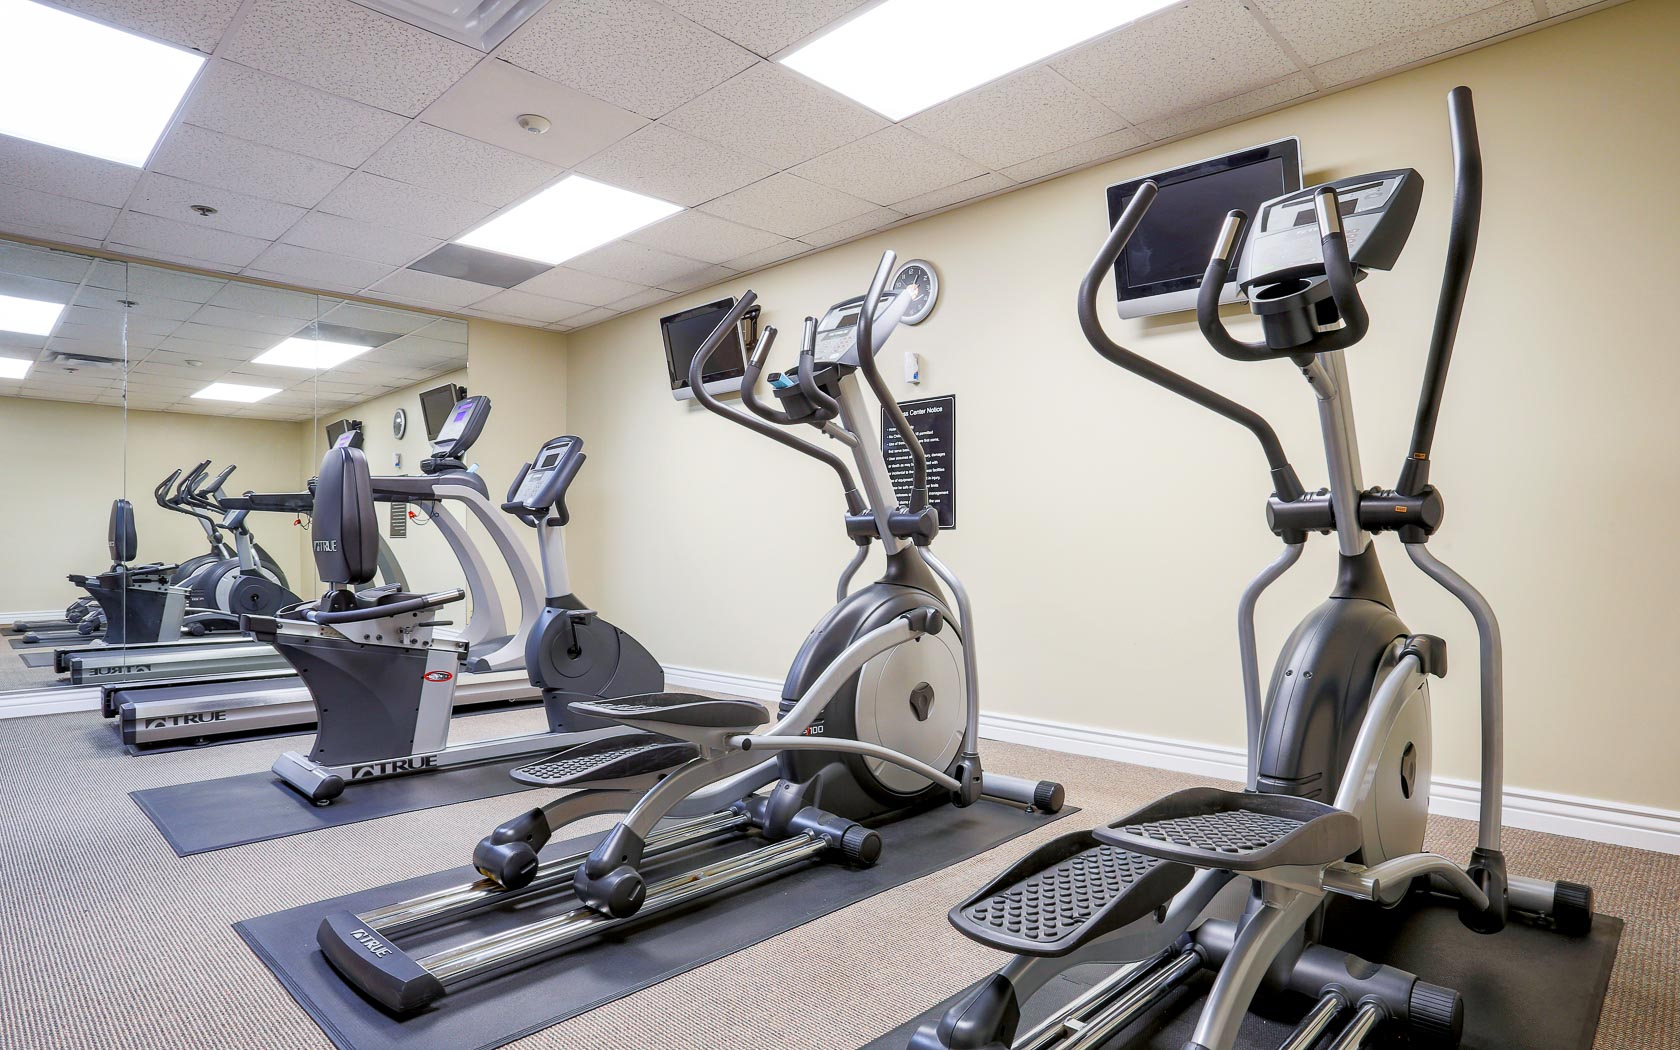 stair steppers and bicycle machines in fitness center